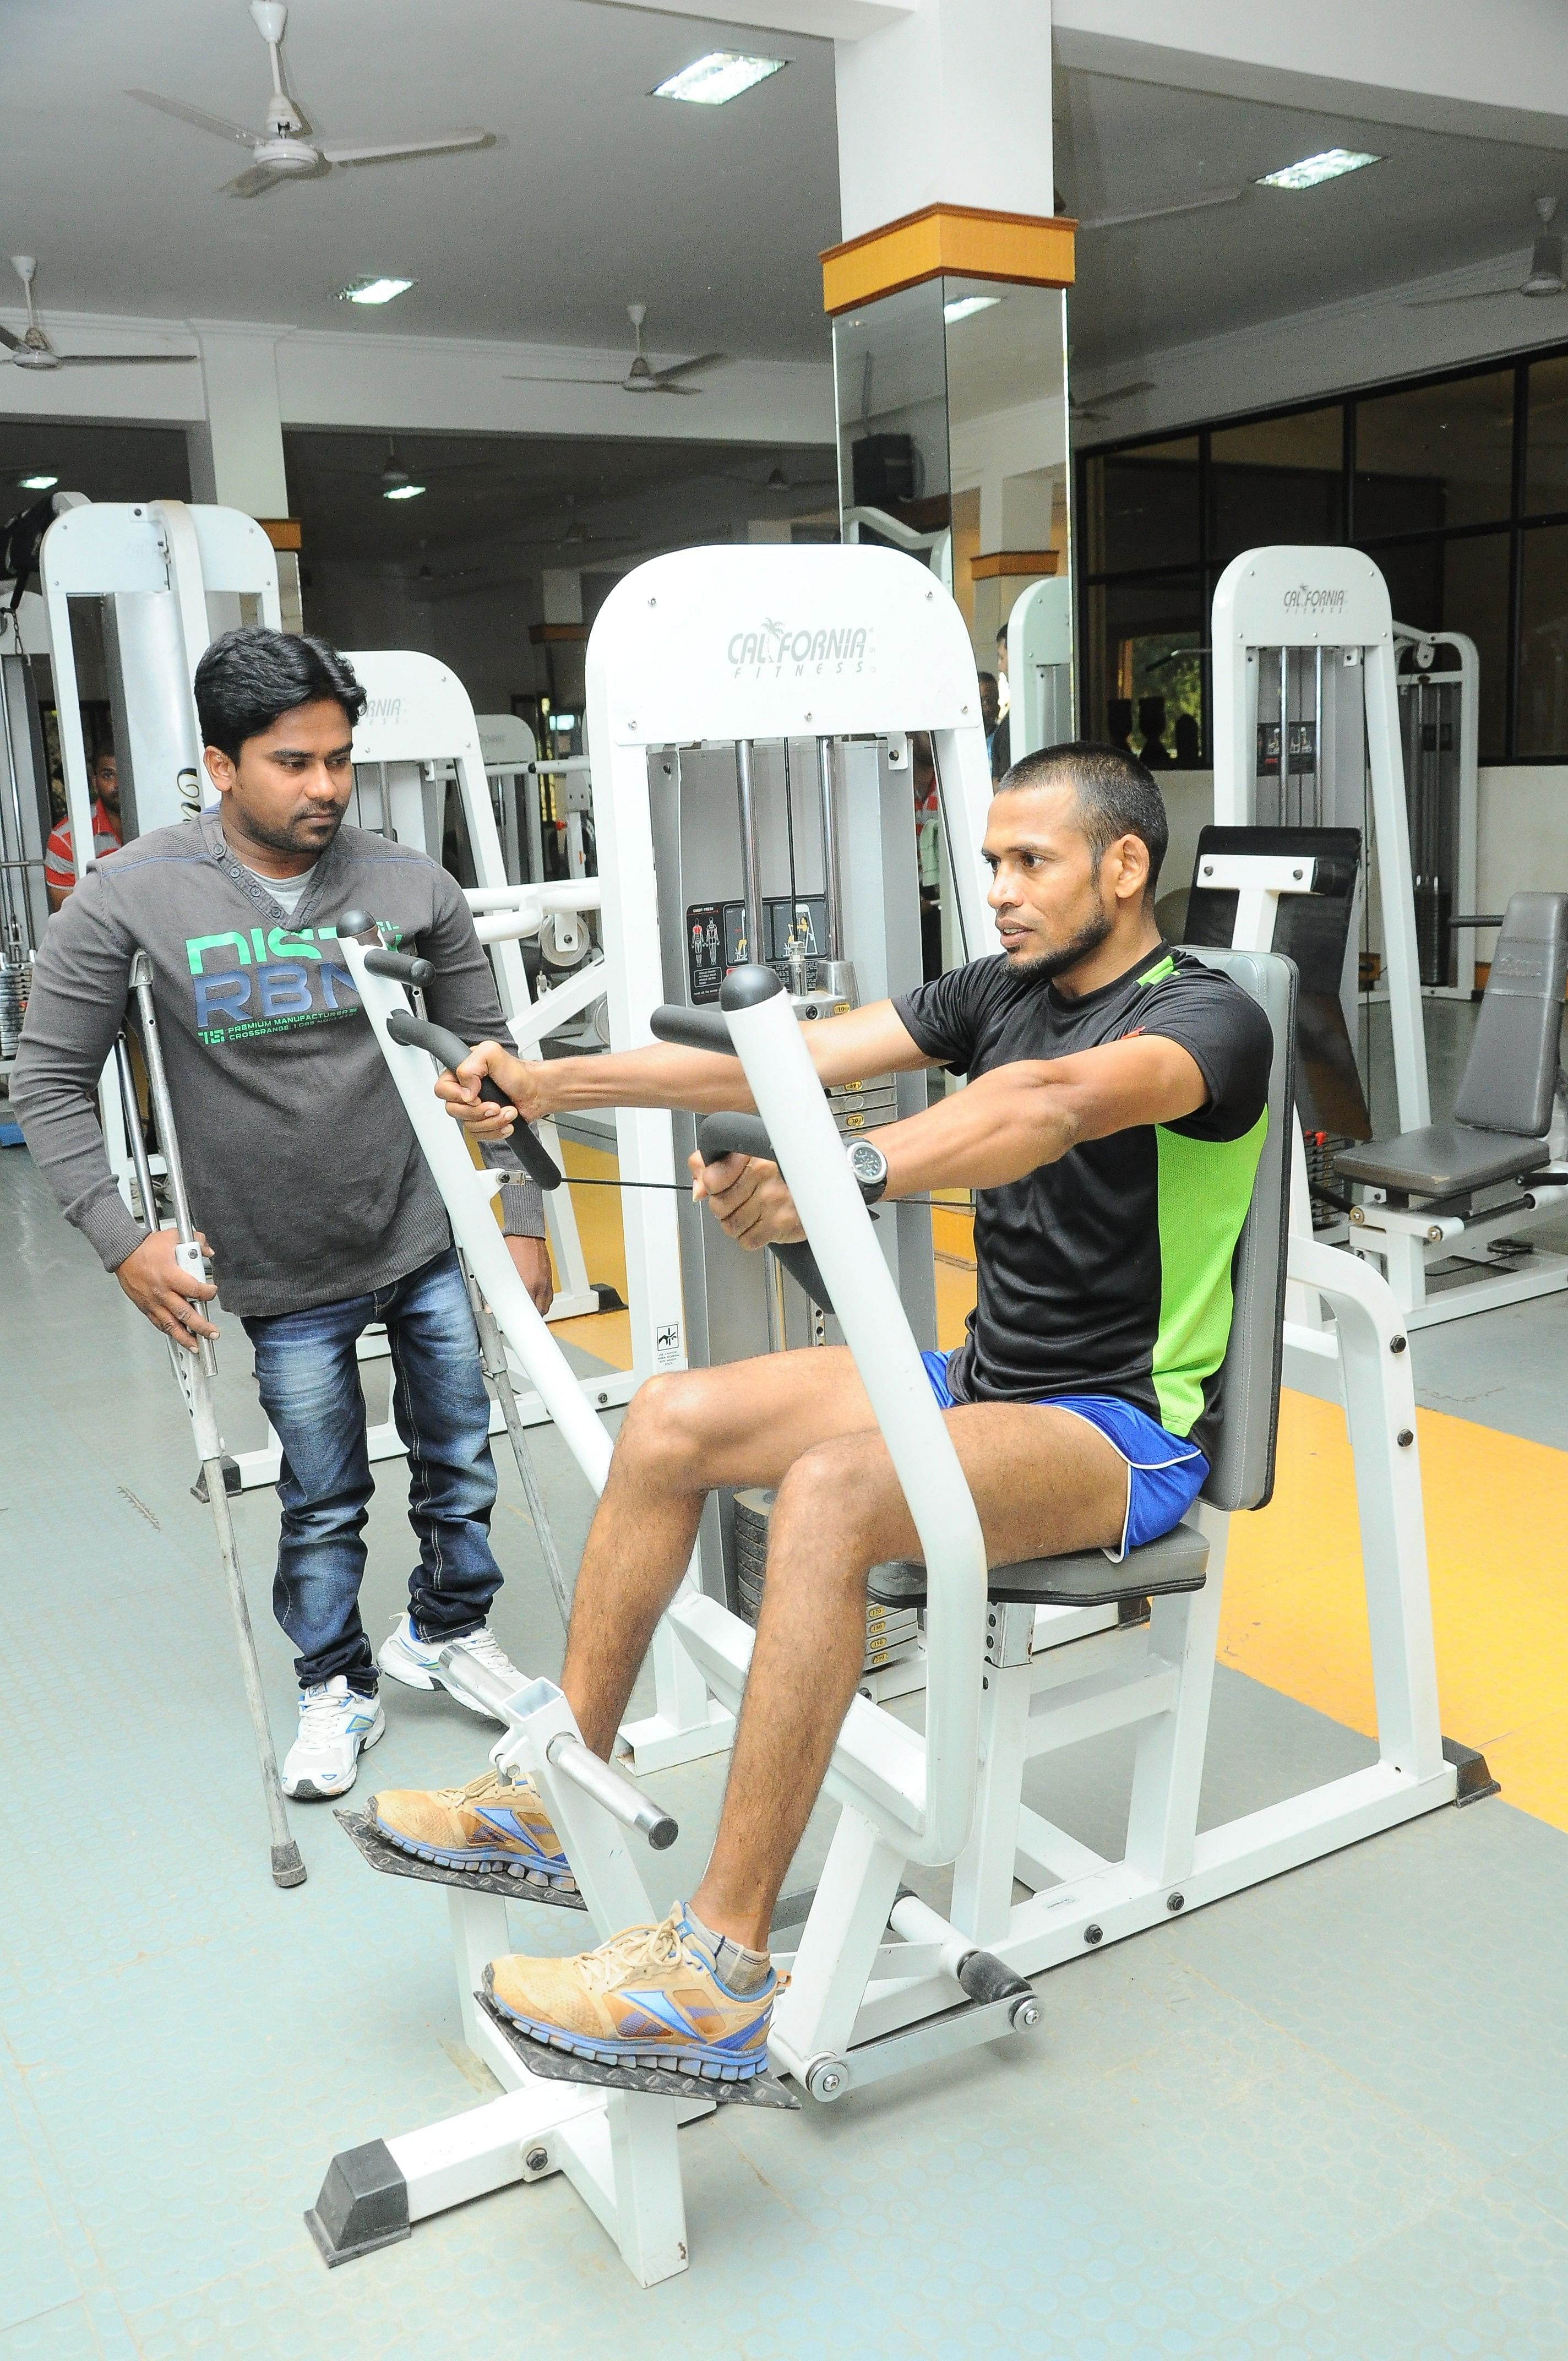 Kishore overseeing another of his pupil's training